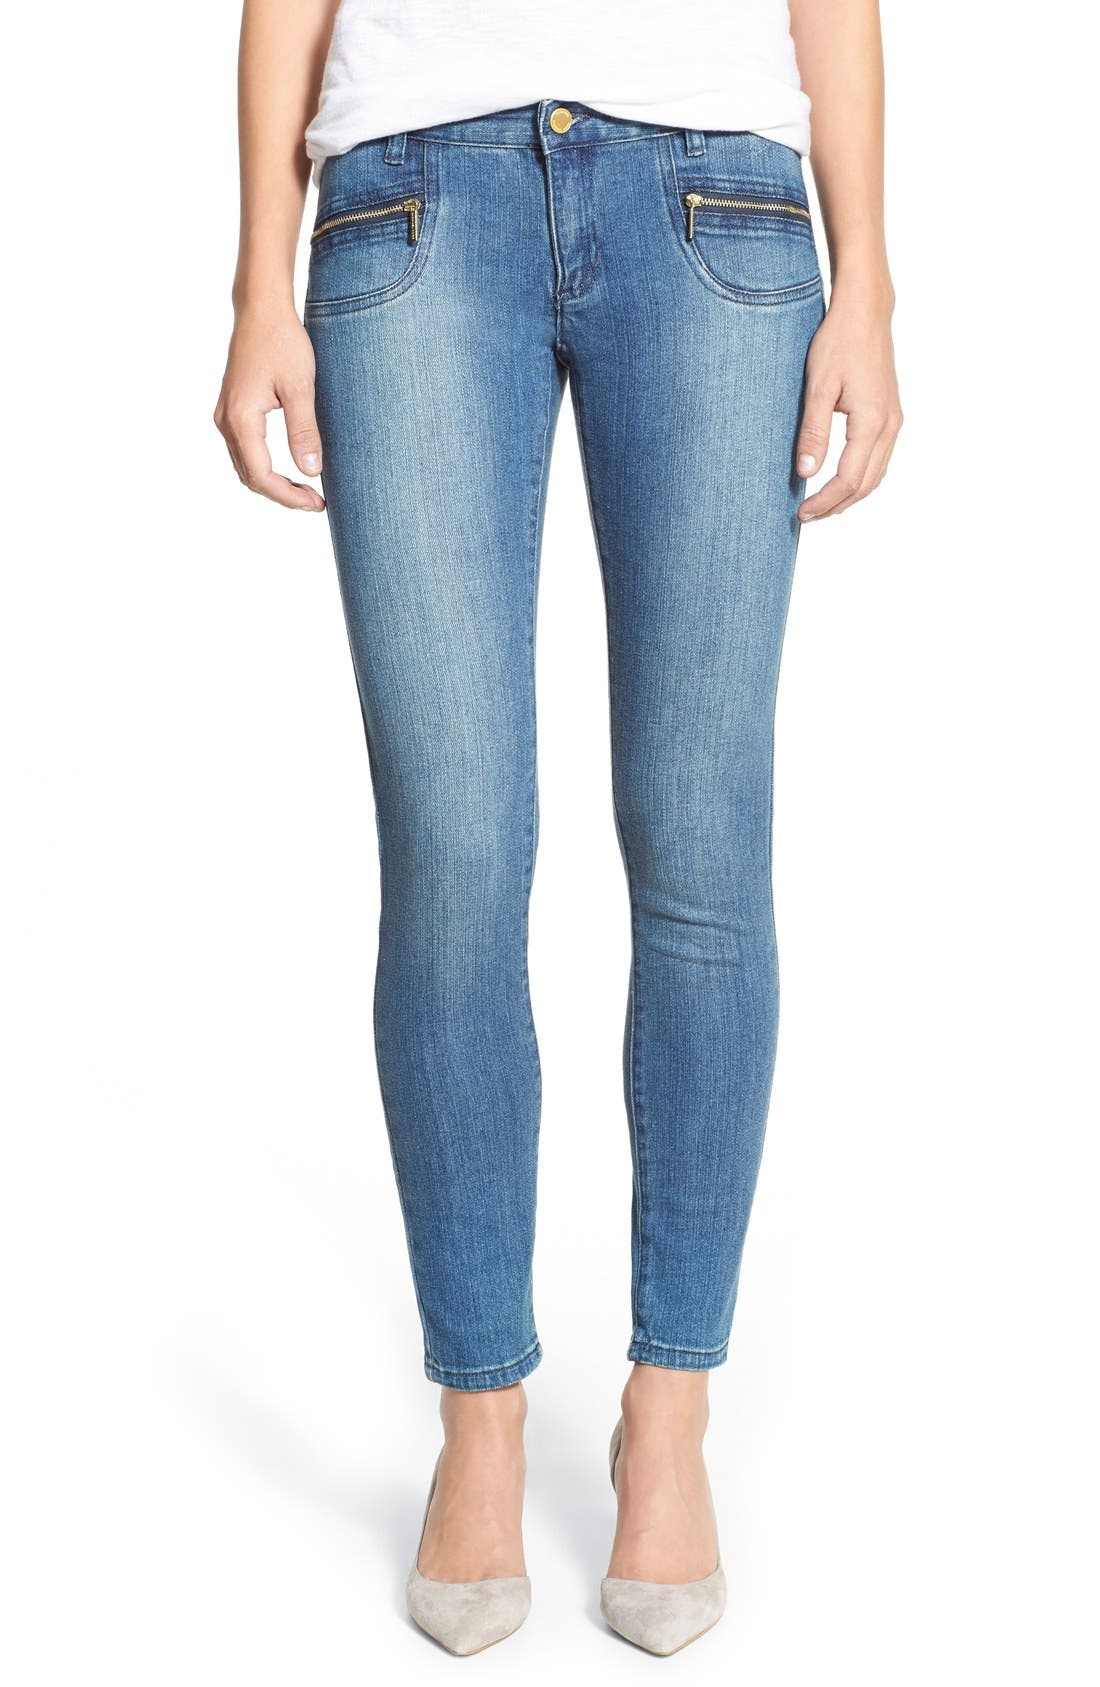 Alternate Image 1 Selected - MICHAEL Michael Kors Stretch Zip Pocket Ankle Skinny Jeans (Veruschka)